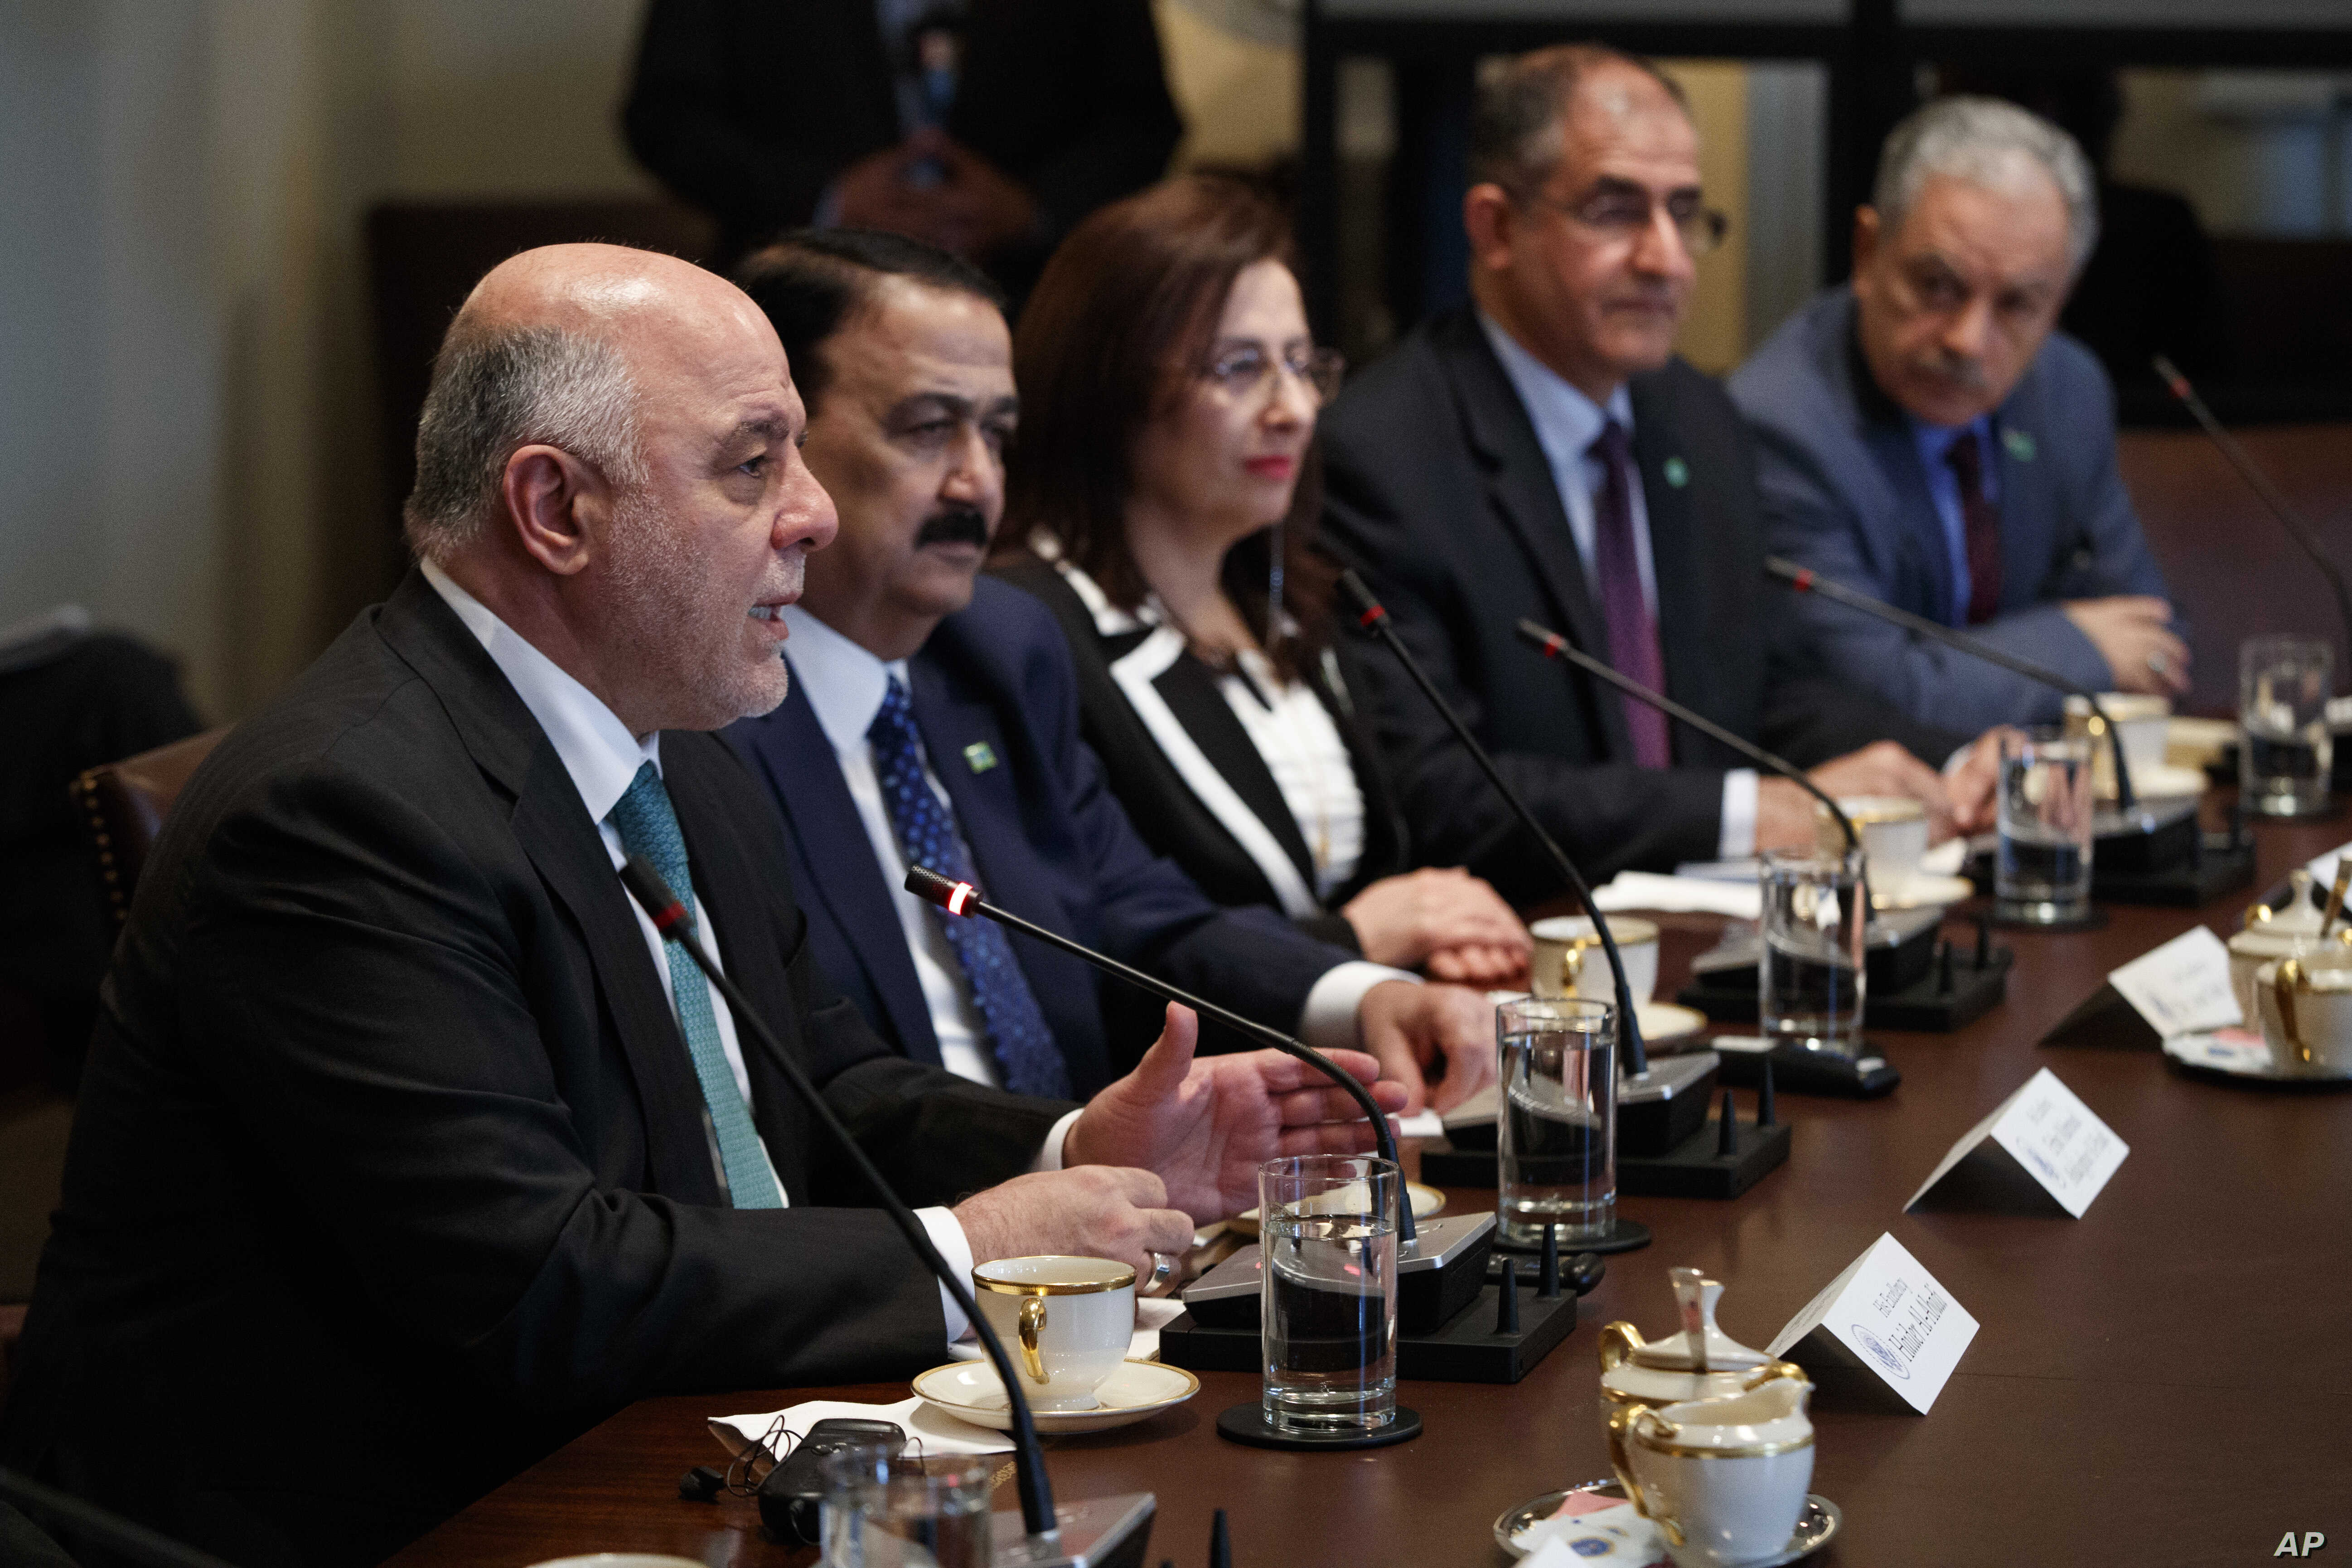 Iraqi Prime Minister Haider al-Abadi speaks during a meeting with President Donald Trump in the Cabinet Room of the White House, March 20, 2017.